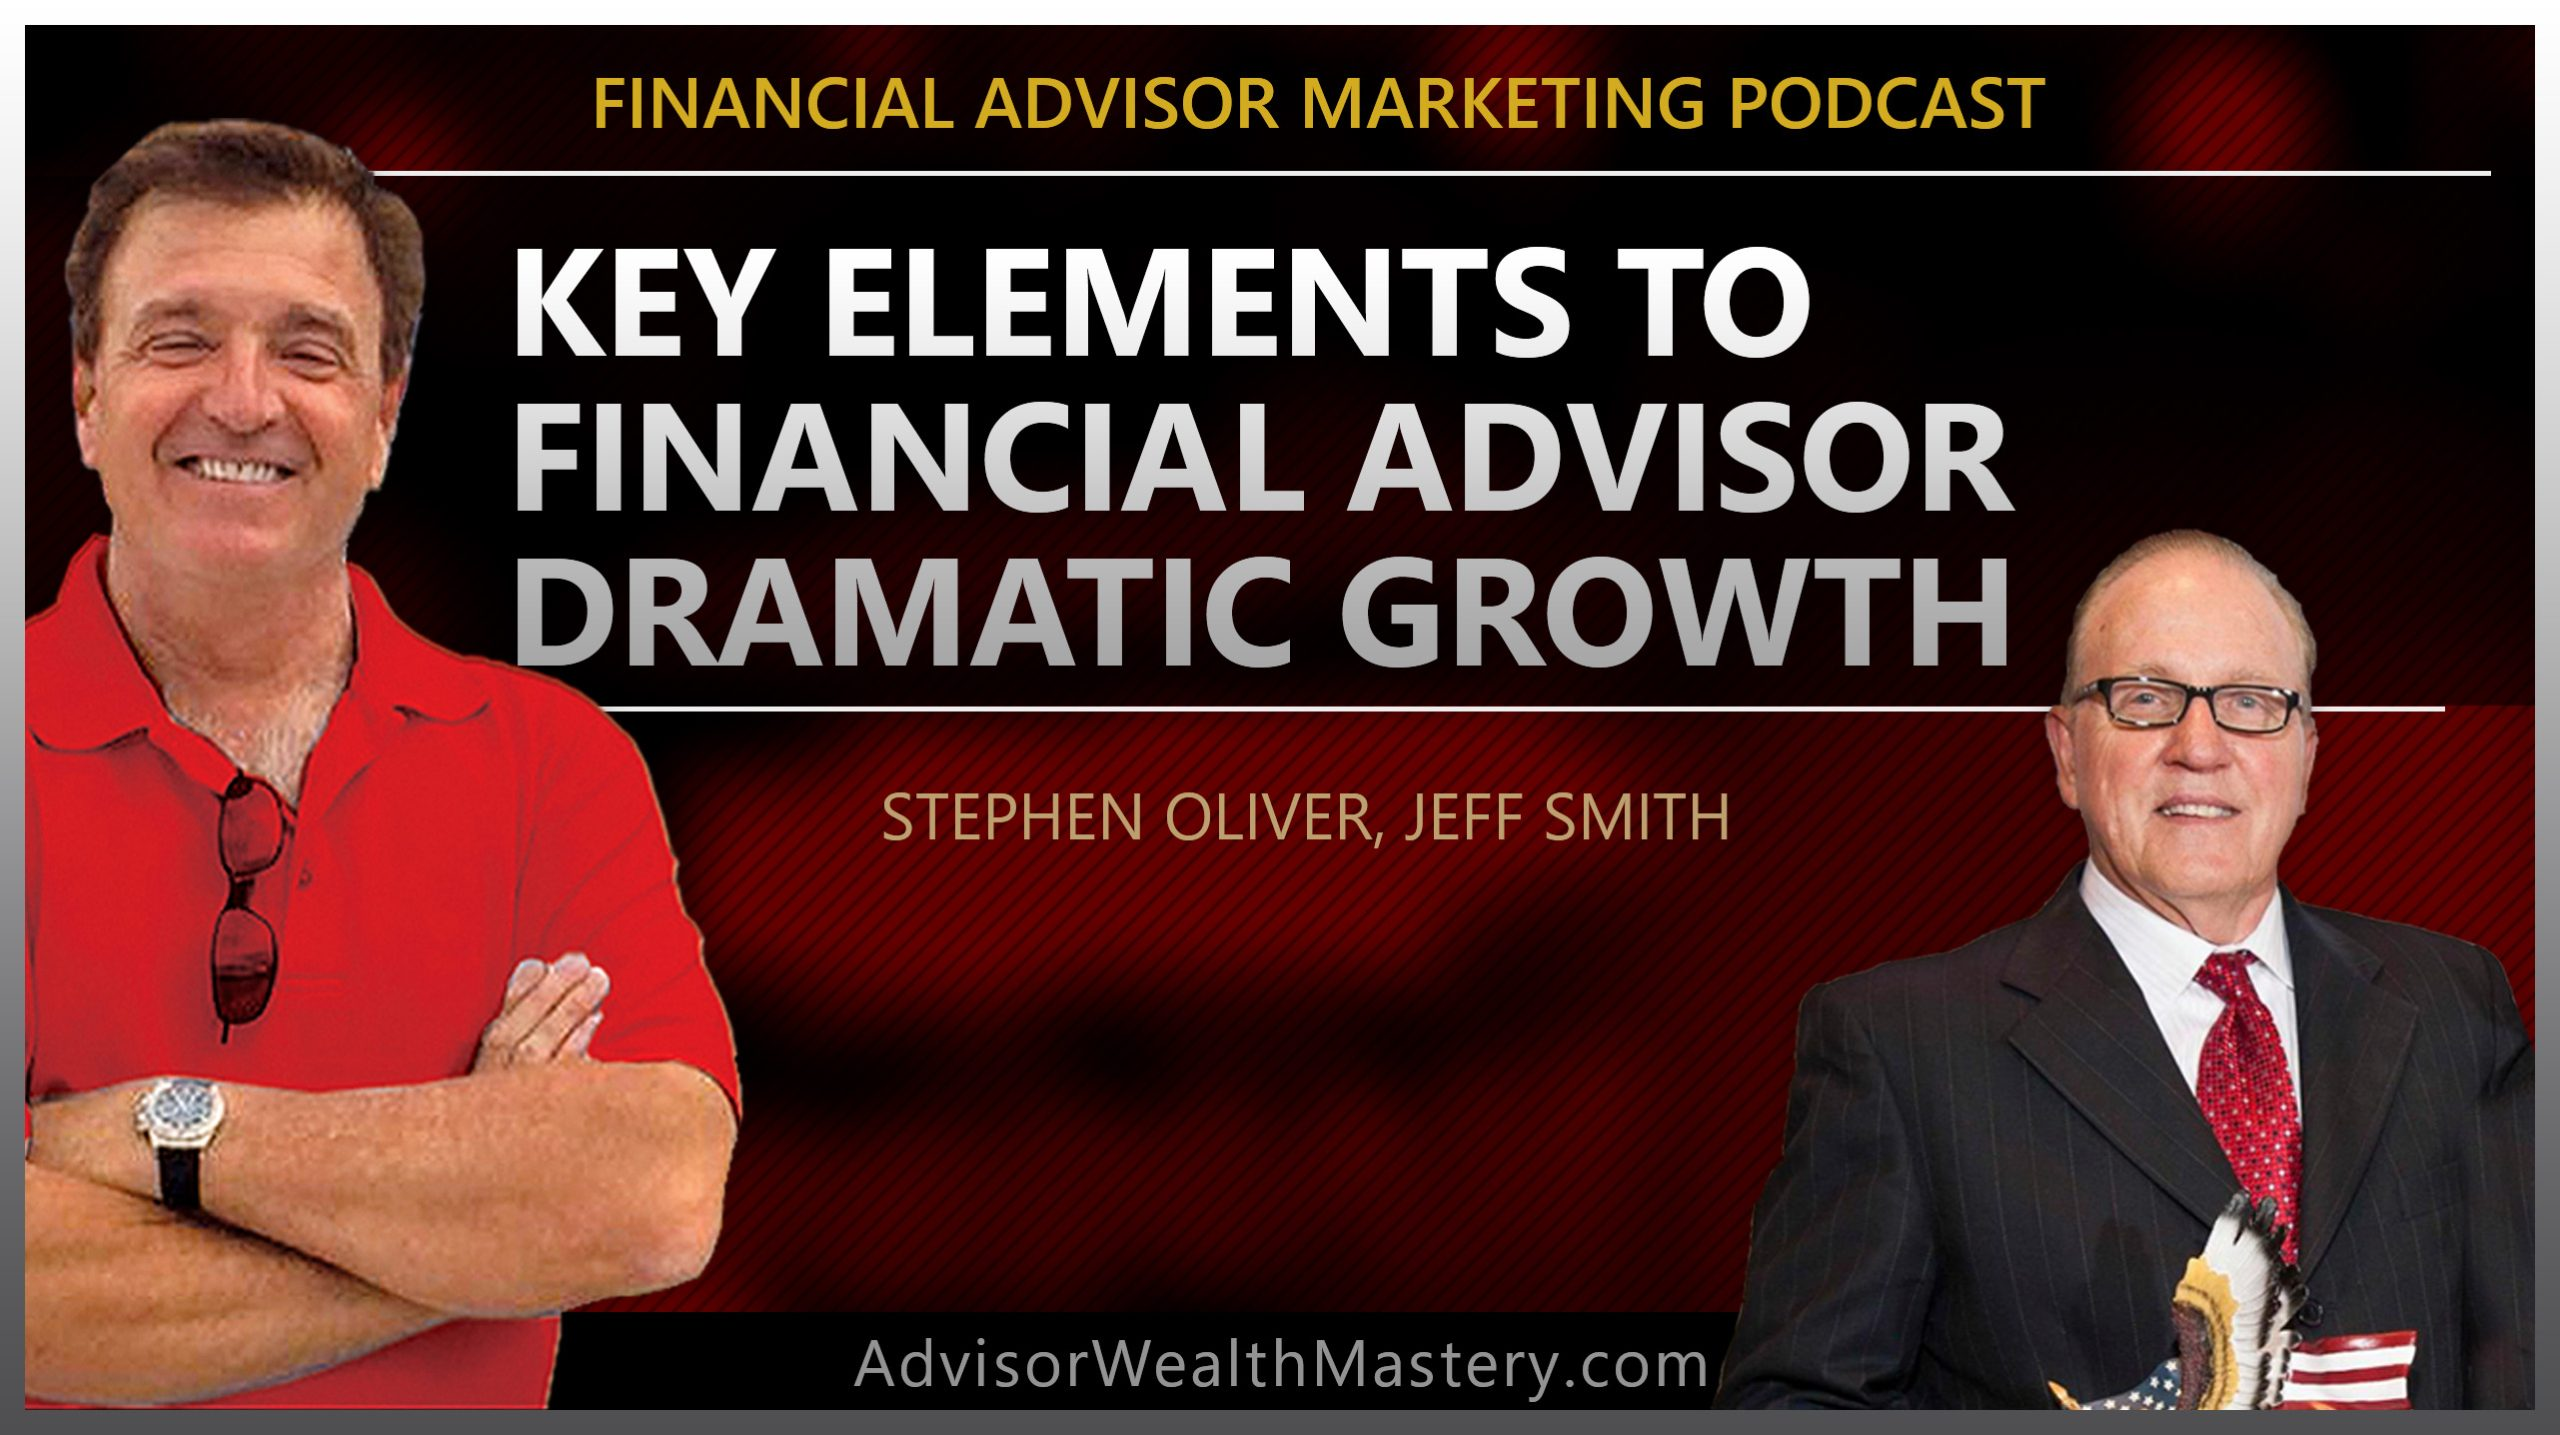 Key Elements to Financial Advisor Dramatic Growth with Stephen Oliver and Jeff Smith.